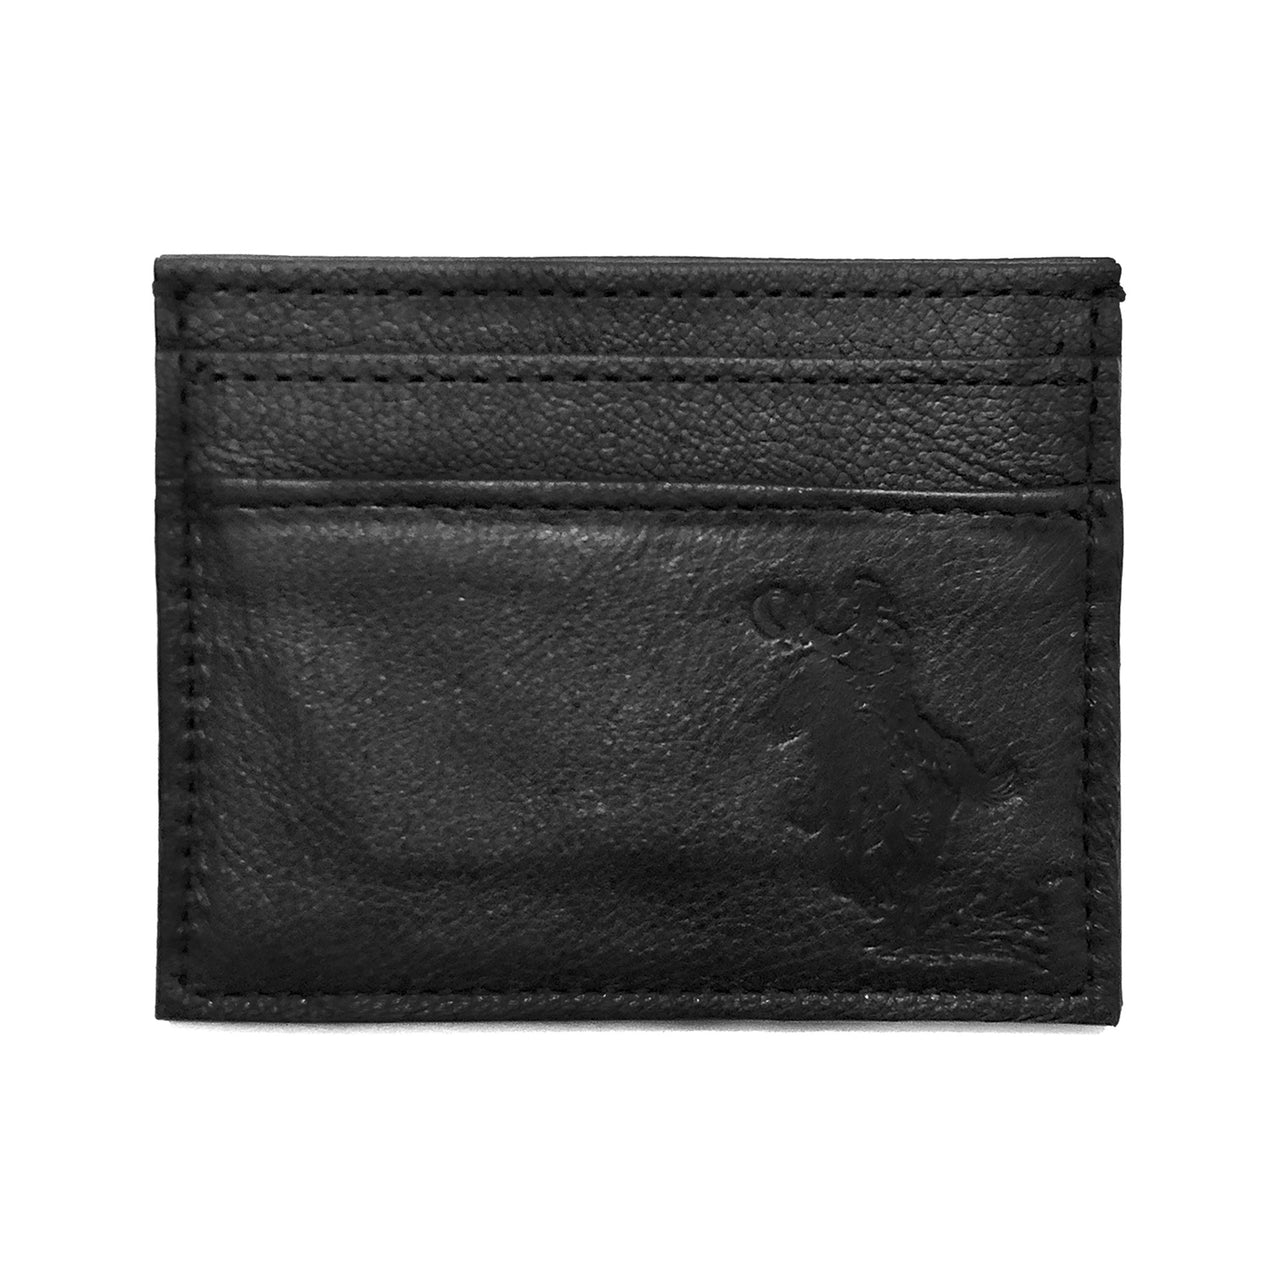 LAY BACK AND DREAM CARD HOLDER- BLACK